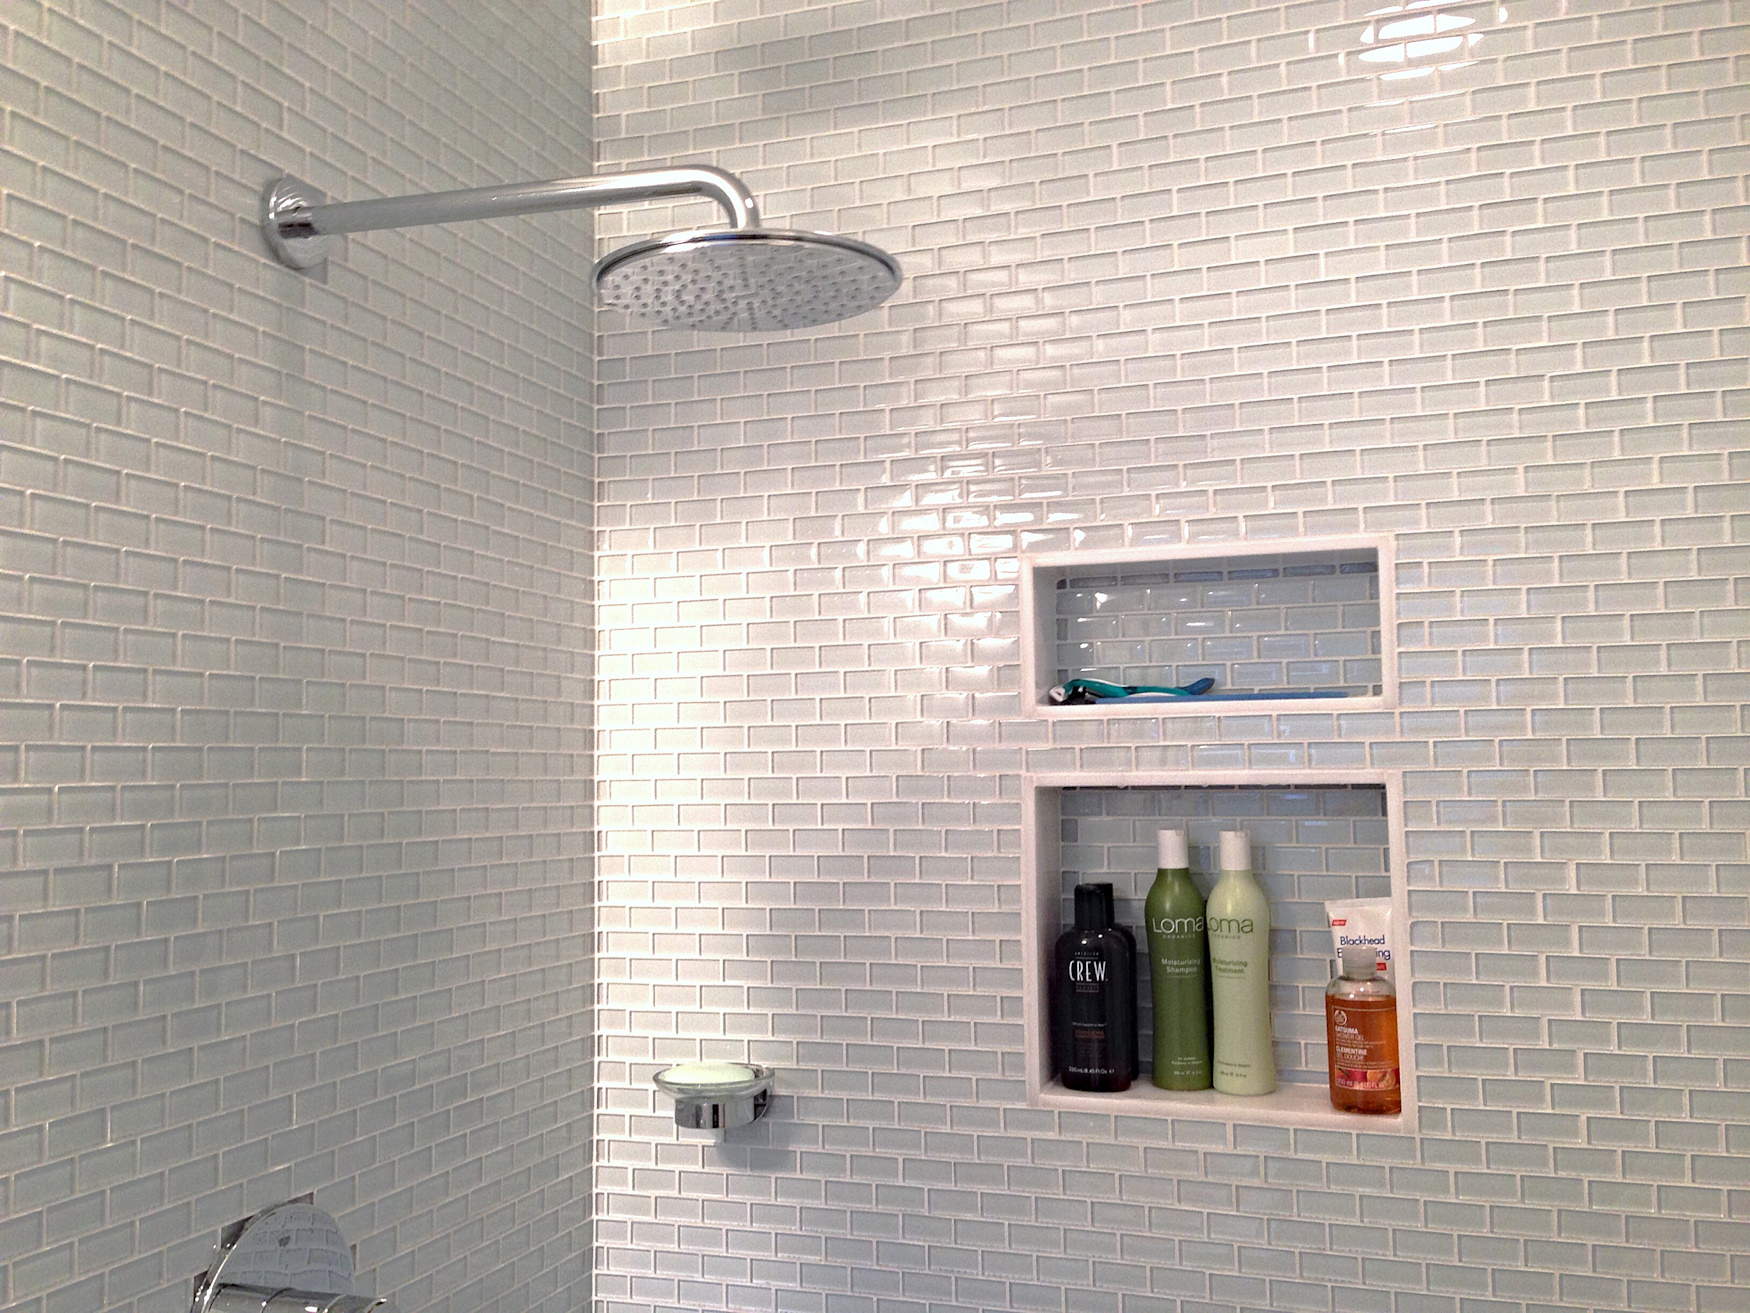 Subway Tile Sizes for Wet Areas | HomesFeed